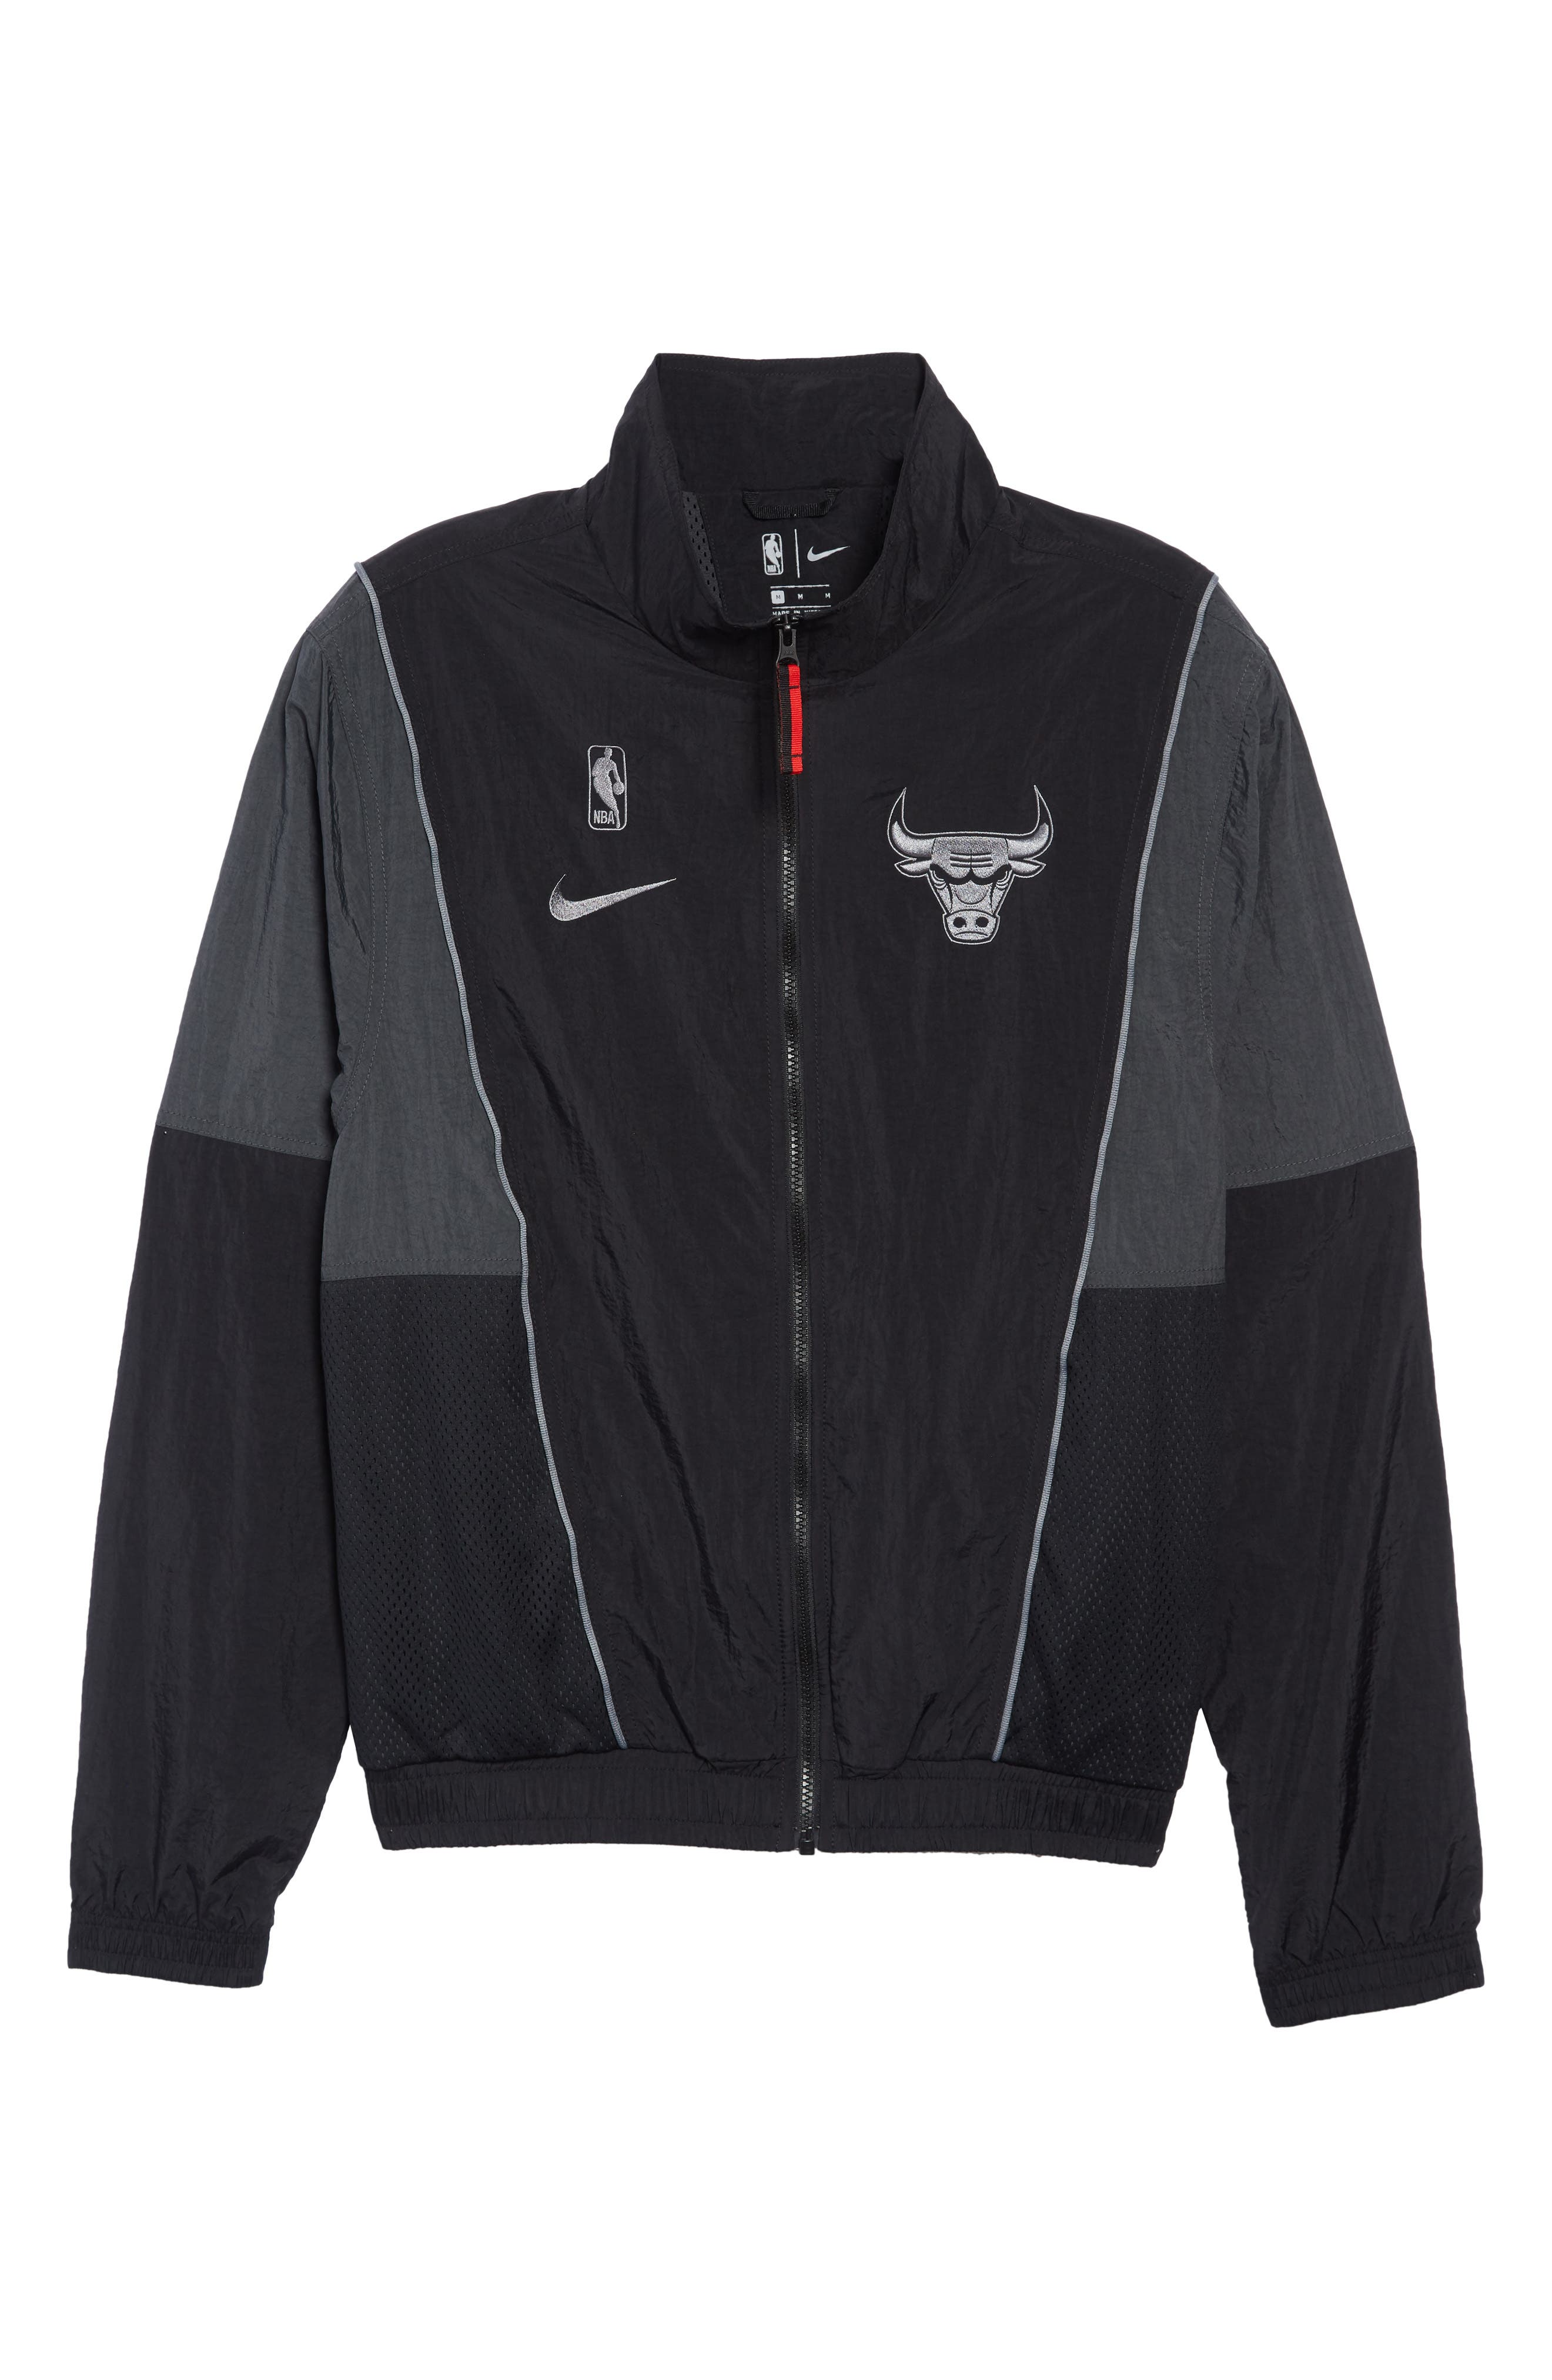 Chicago Bulls Track Jacket,                             Alternate thumbnail 6, color,                             BLACK/ ANTHRACITE/ COOL GREY